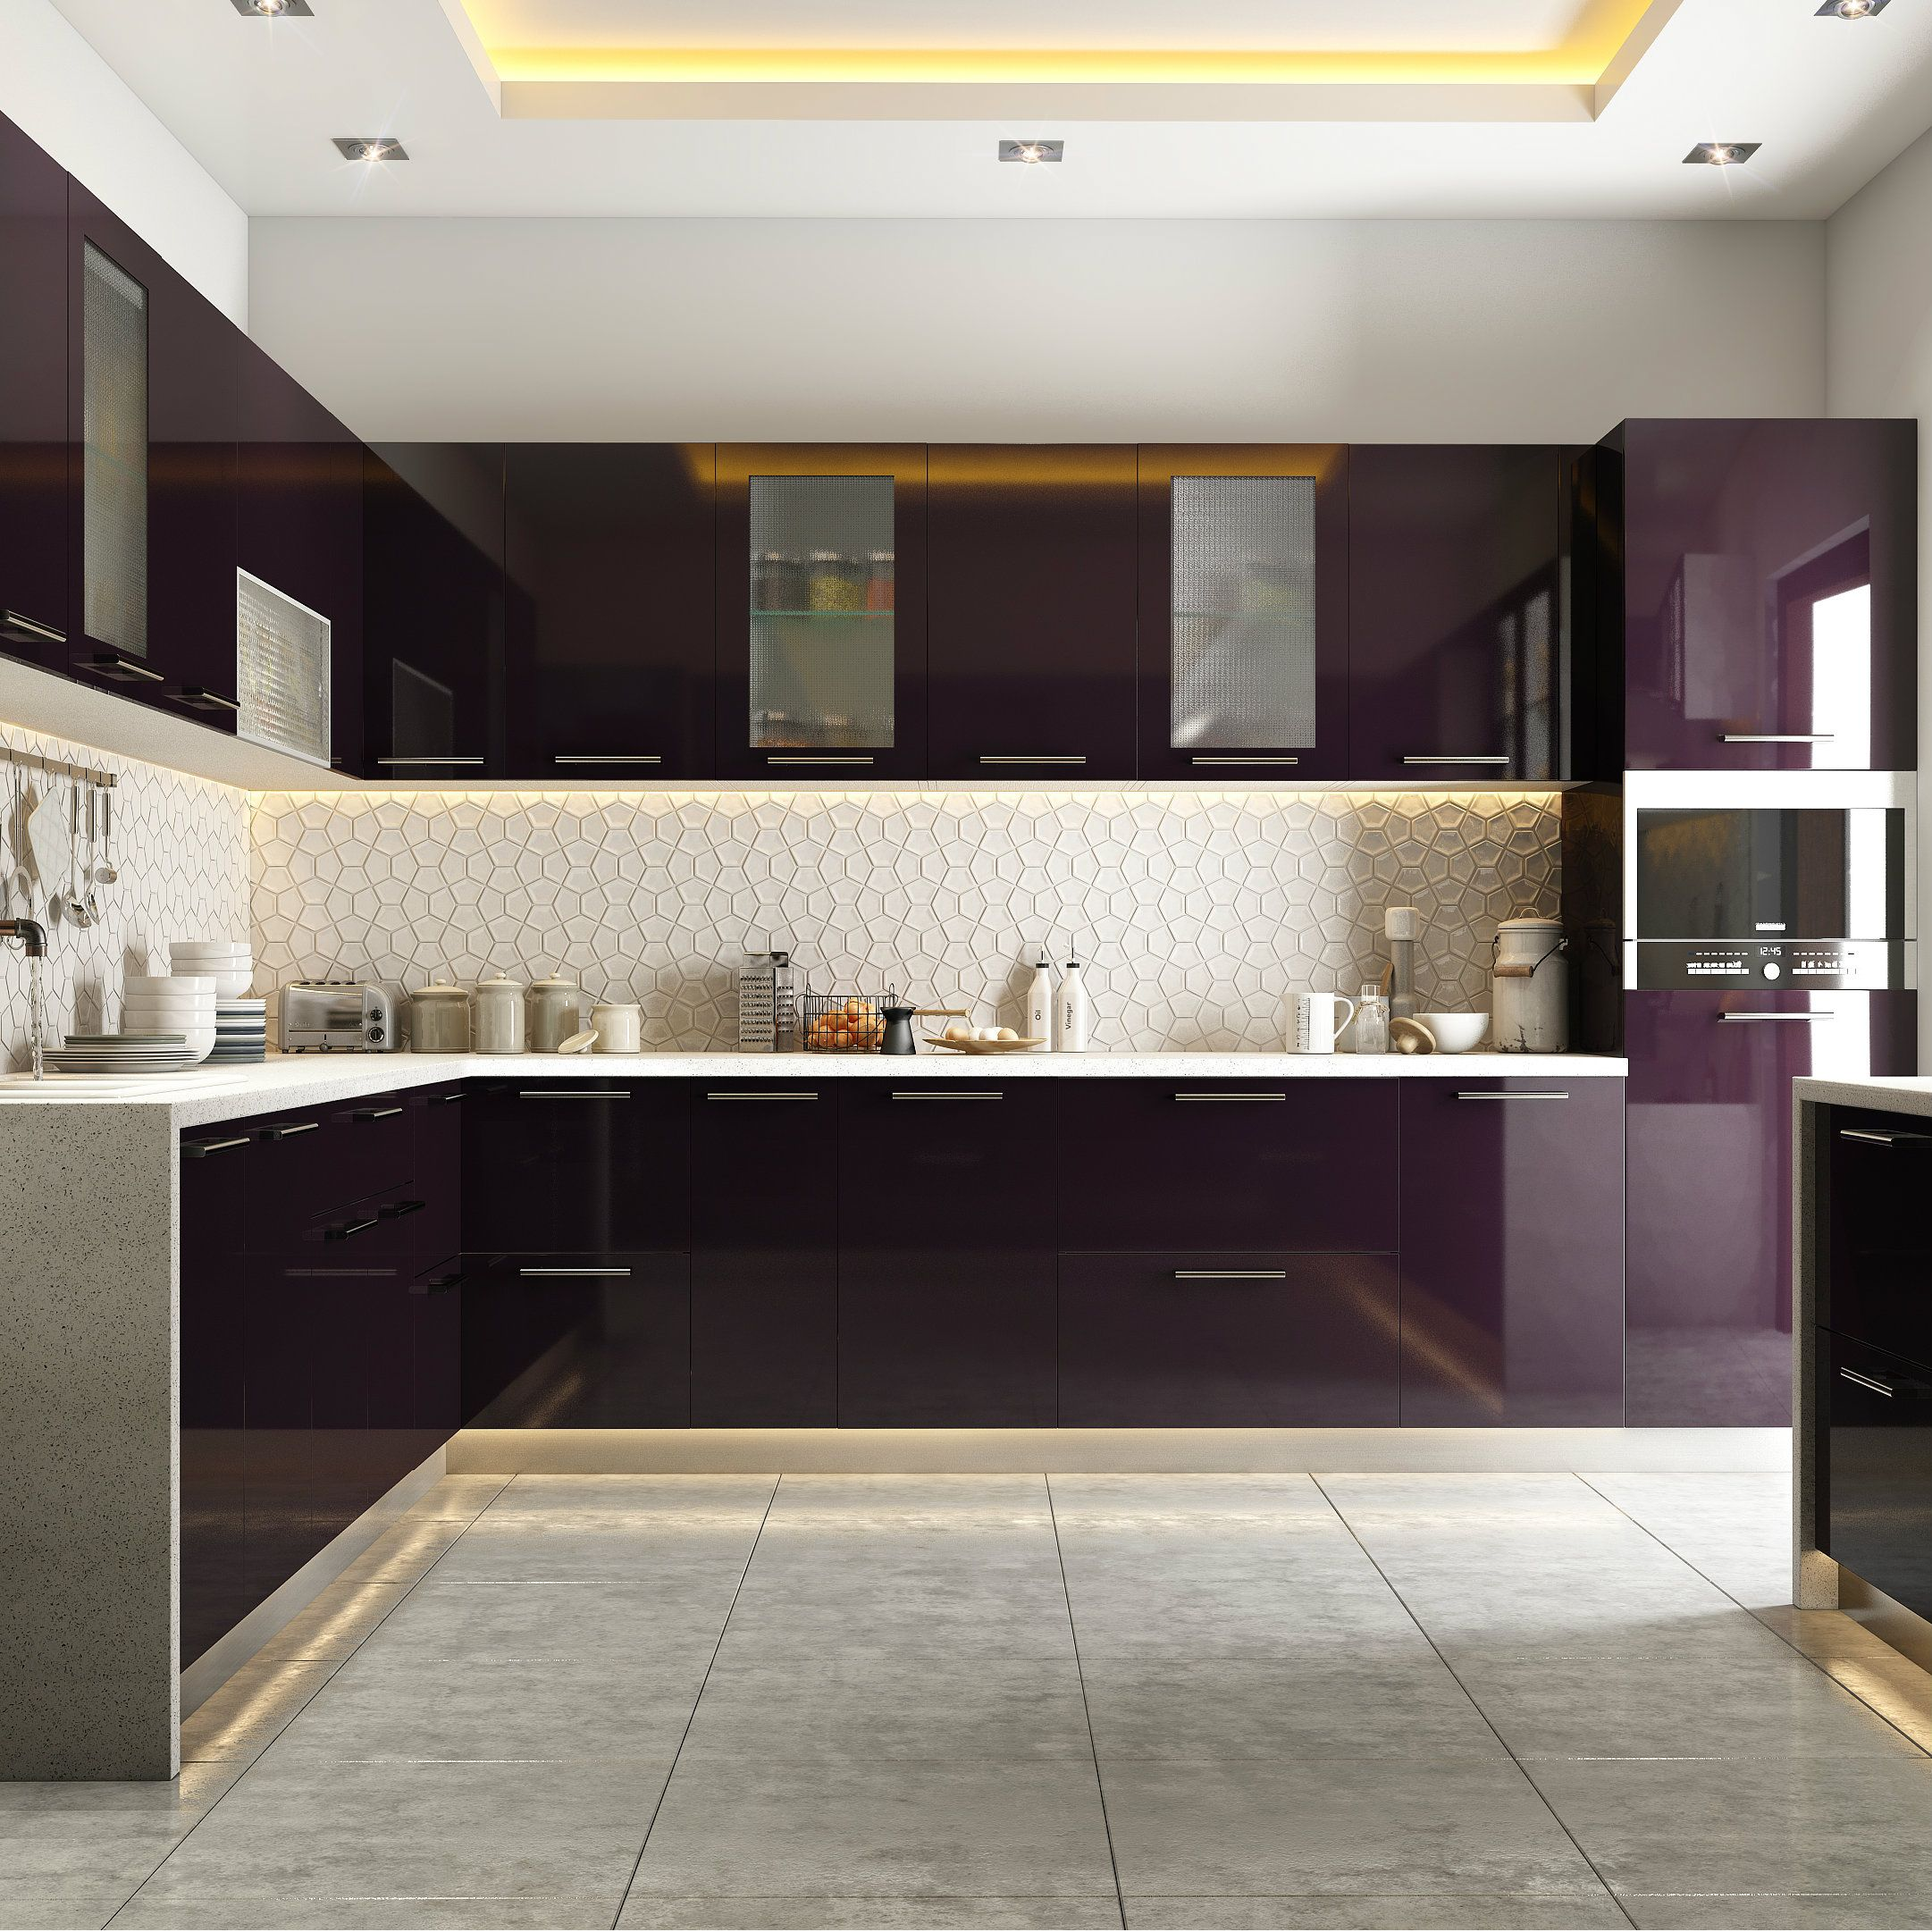 Modular Kitchen Interior Design Ideas ~ Modular kitchen design ideas for indian homes